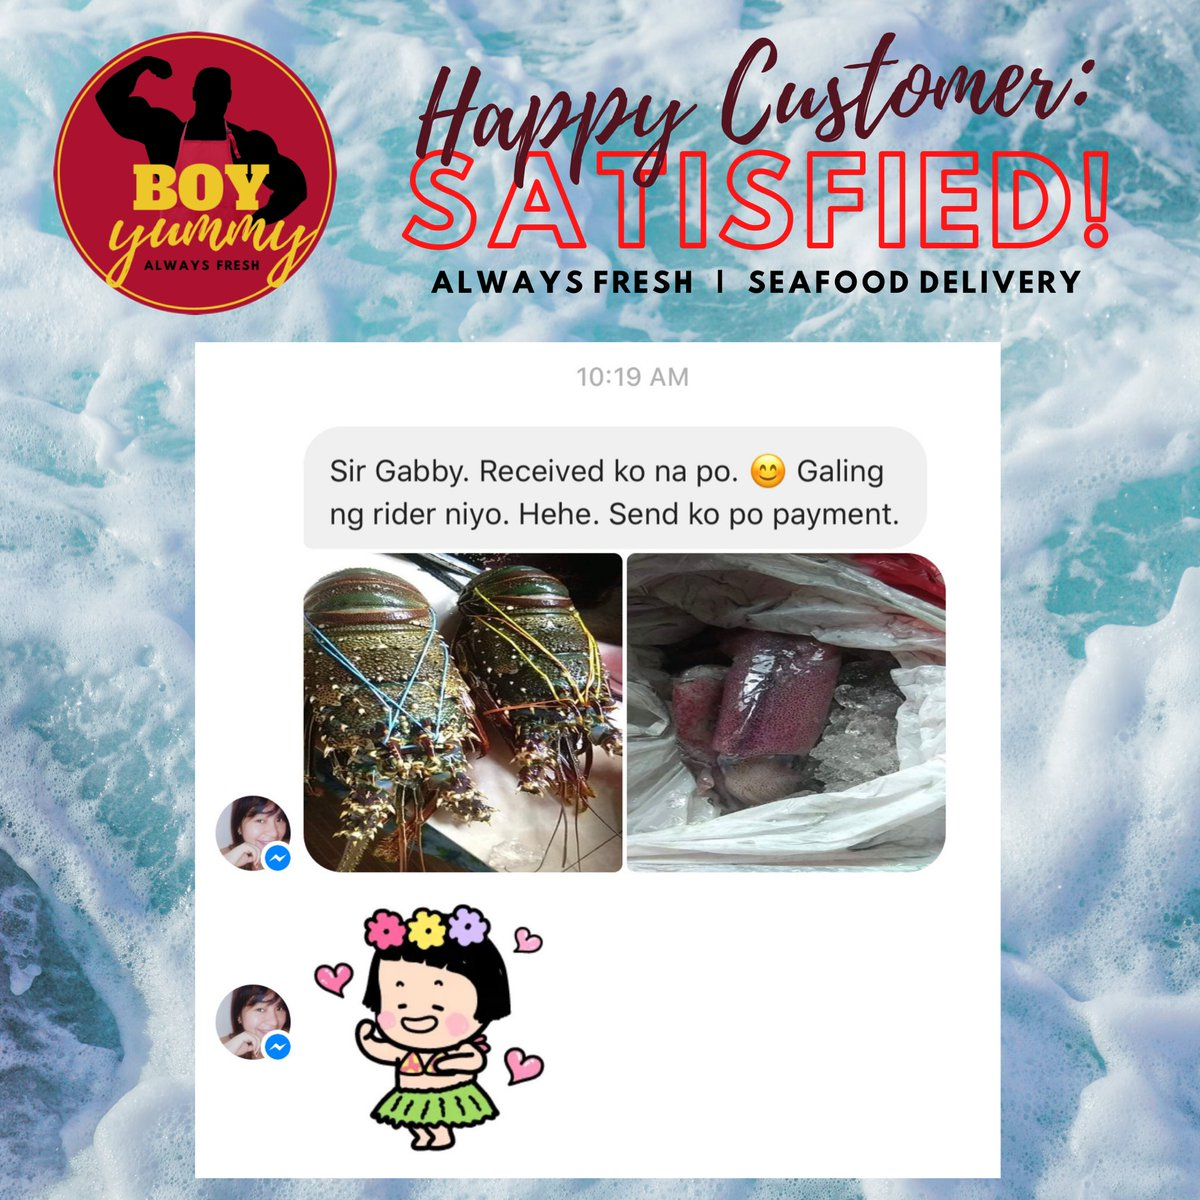 Maraming salamat po sa ating first-time customer na si Ms Danica ng Novaliches, Quezon City.  #HappyCustomer #satisfied #fresh #lobster #squid #seafood Order yours today. https://t.co/zaCkUU02pY